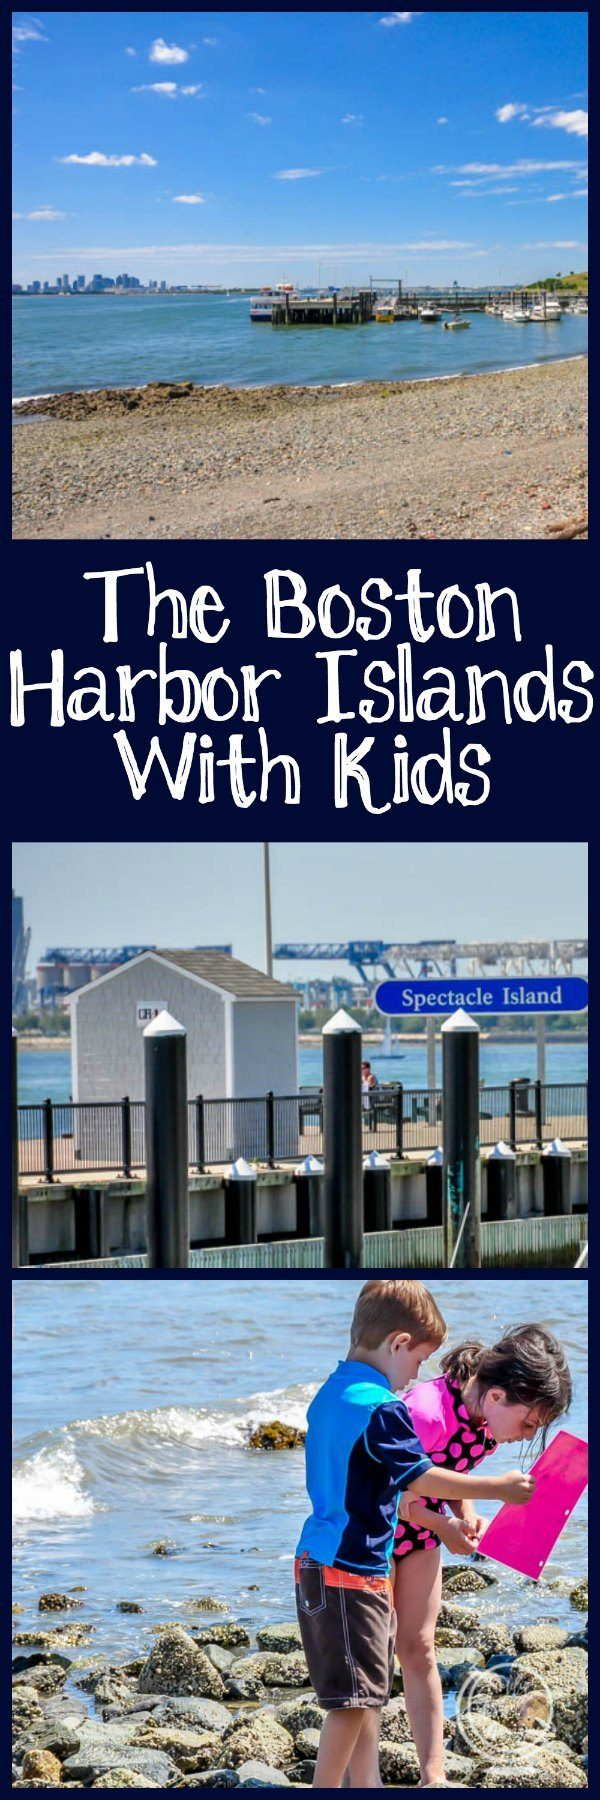 All about the Boston Harbor Islands National Park, including things to do on the Boston Harbor Islands, and Boston Harbor Island activities.